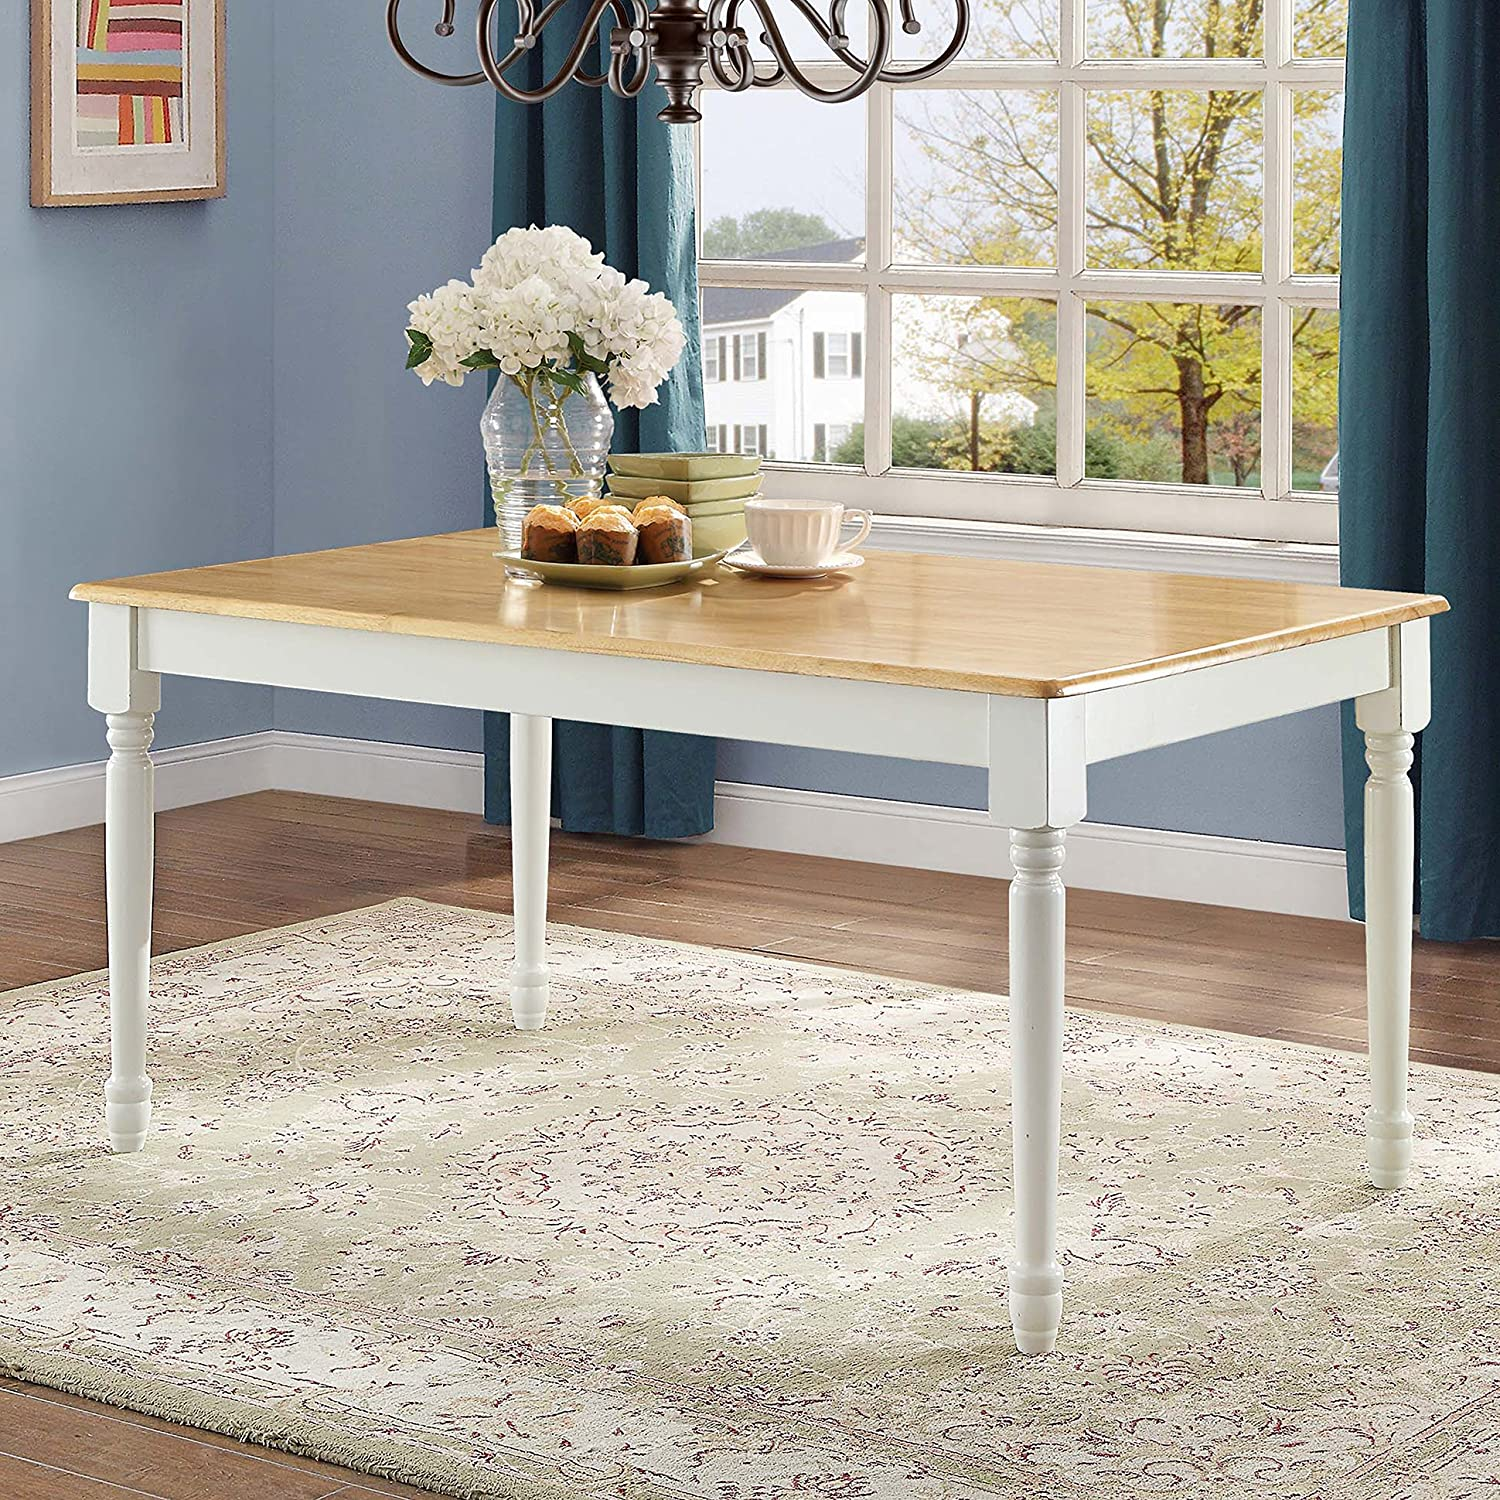 Better Wholesale Homes and Gardens Autumn Whi Lane 2021 new Farmhouse Table Dining